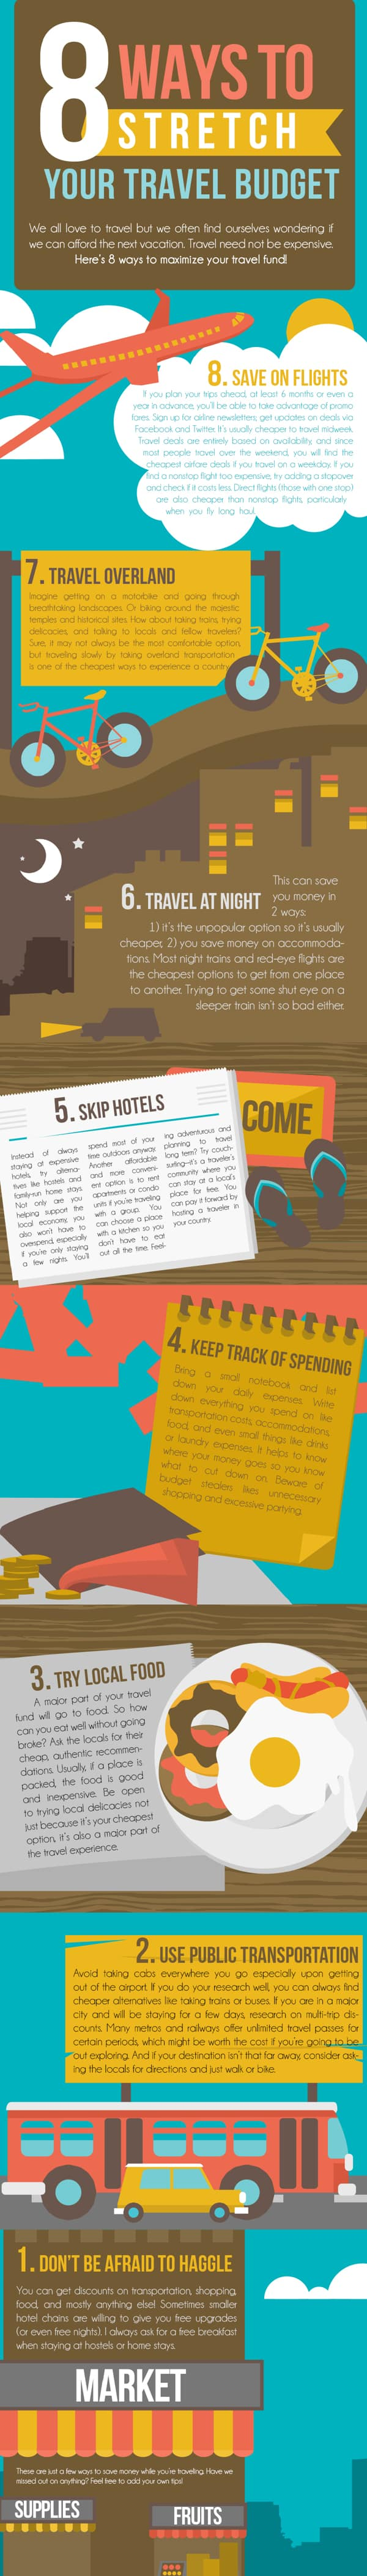 8 ways to Stretch Your Travel Budget Infographic